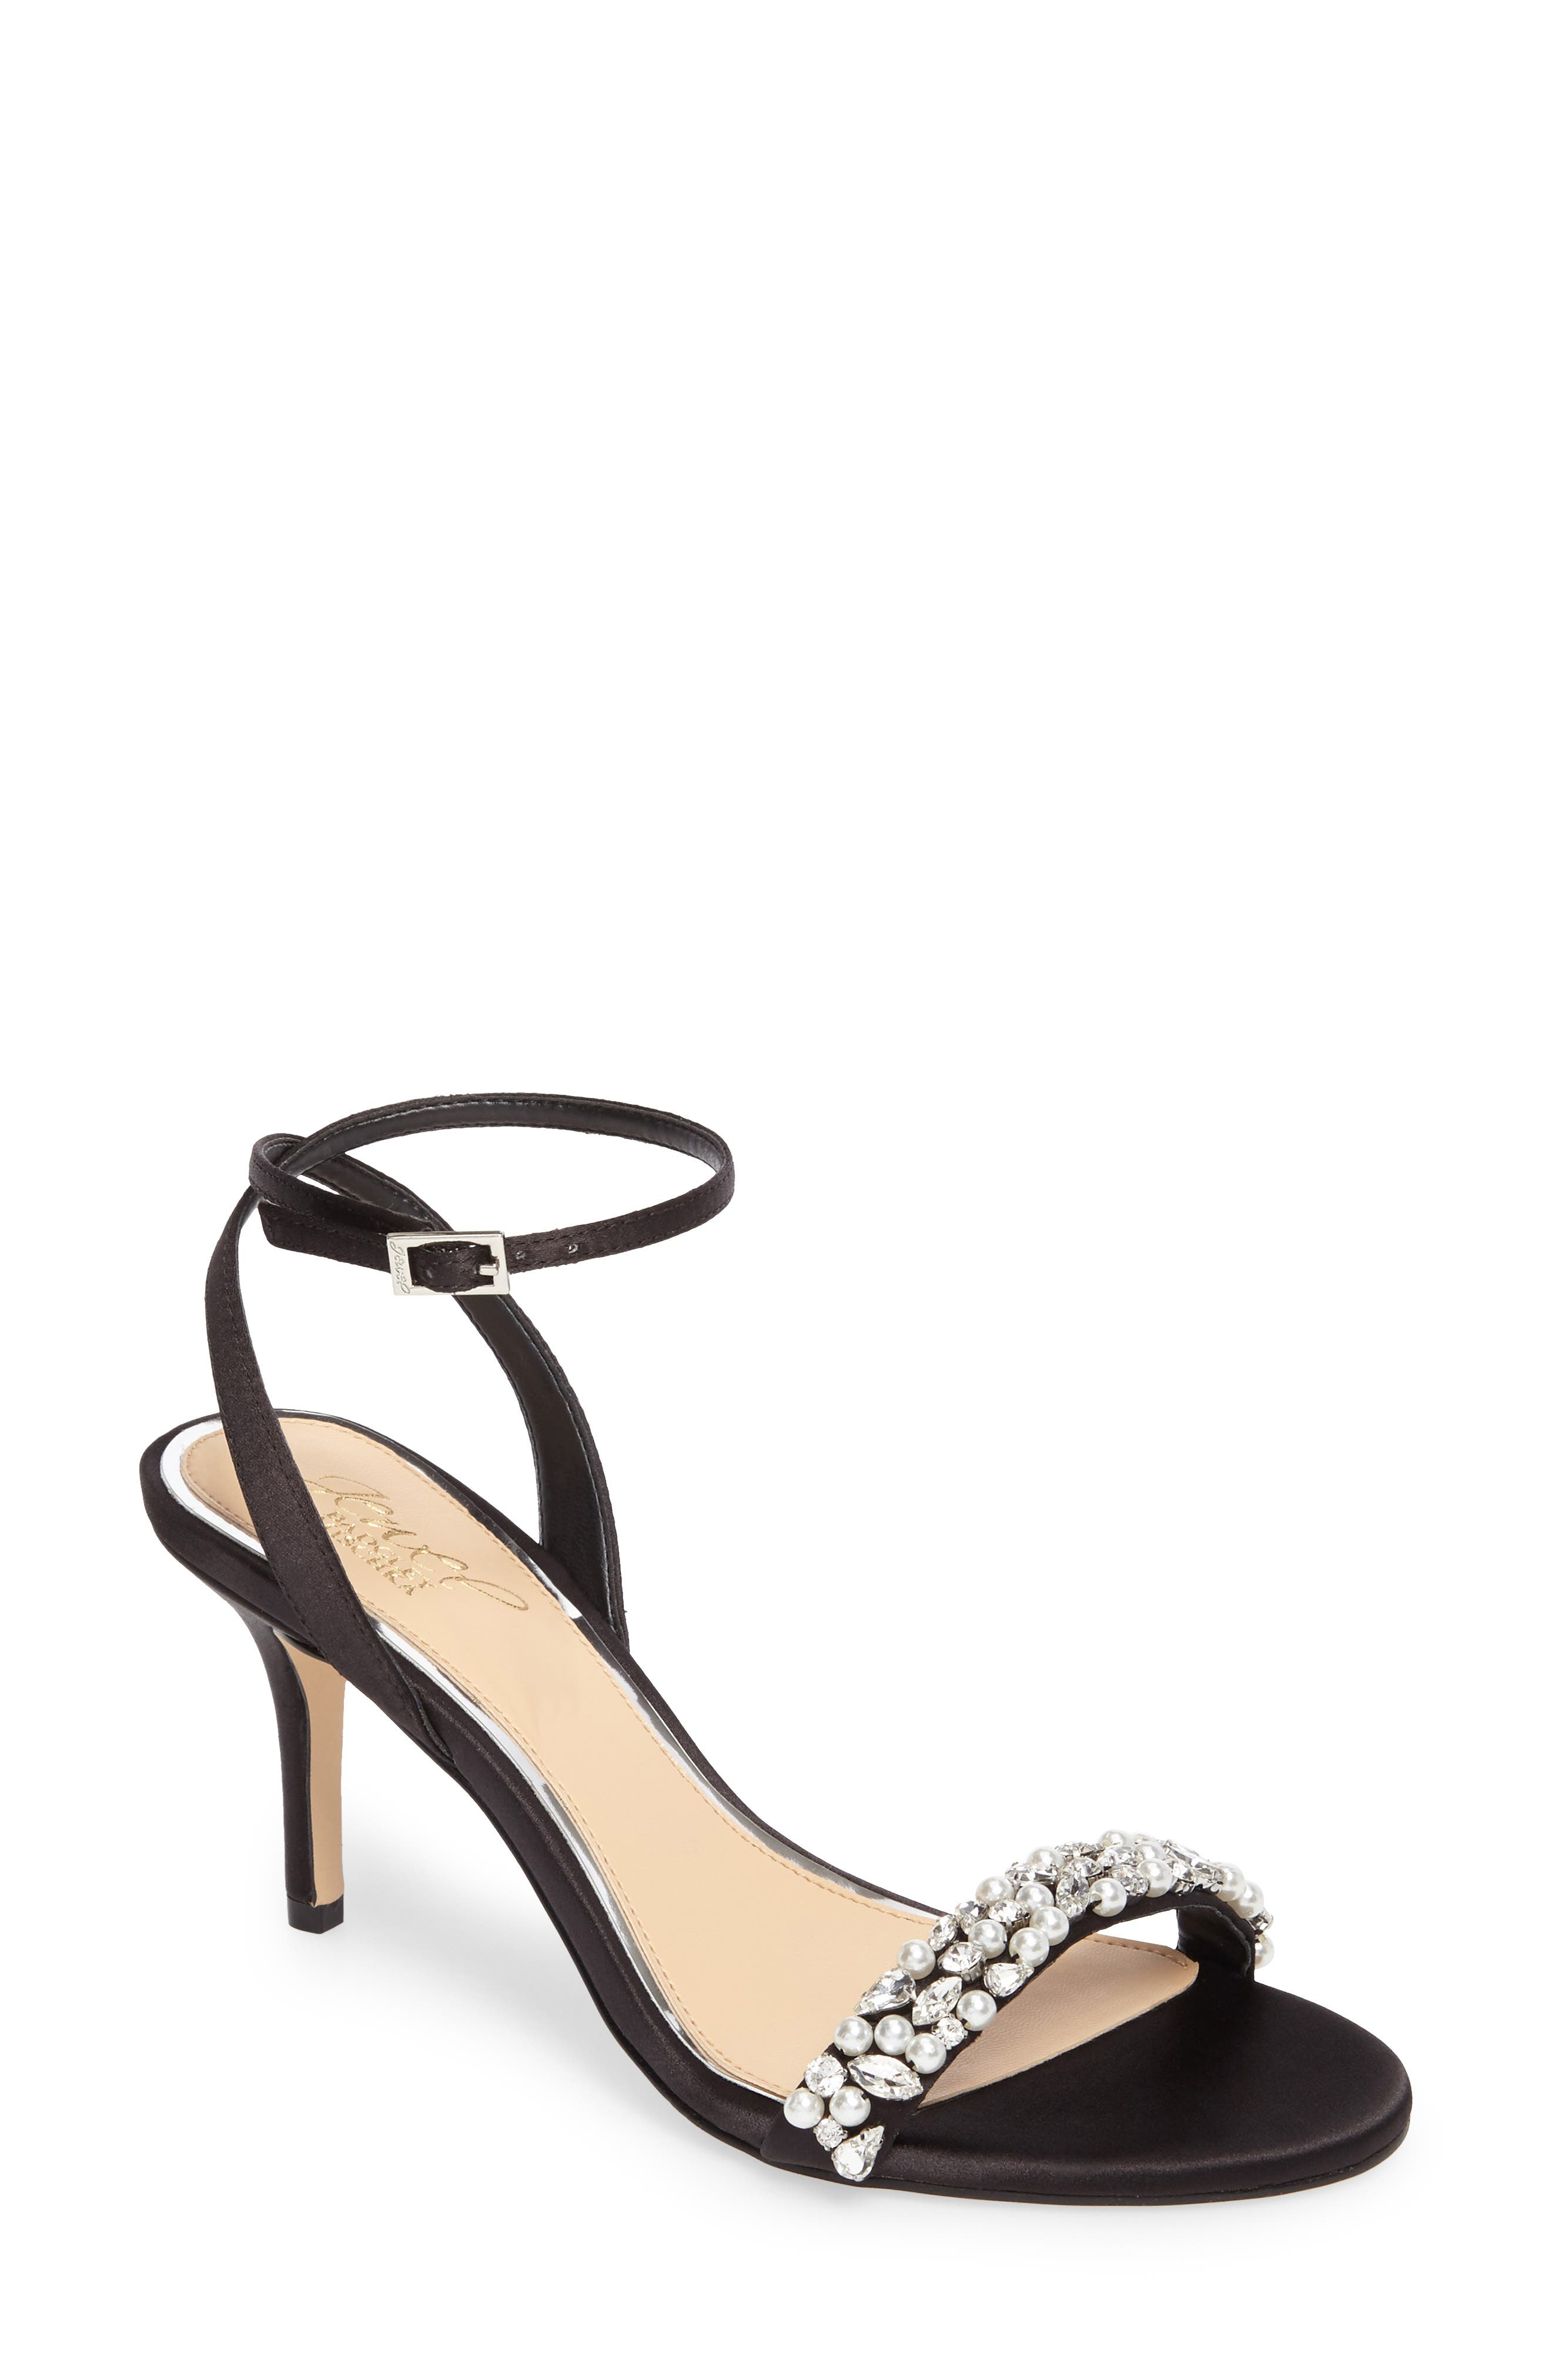 Alternate Image 1 Selected - Jewel by Badgley Mischka Theodora Ankle Strap Sandal (Women)